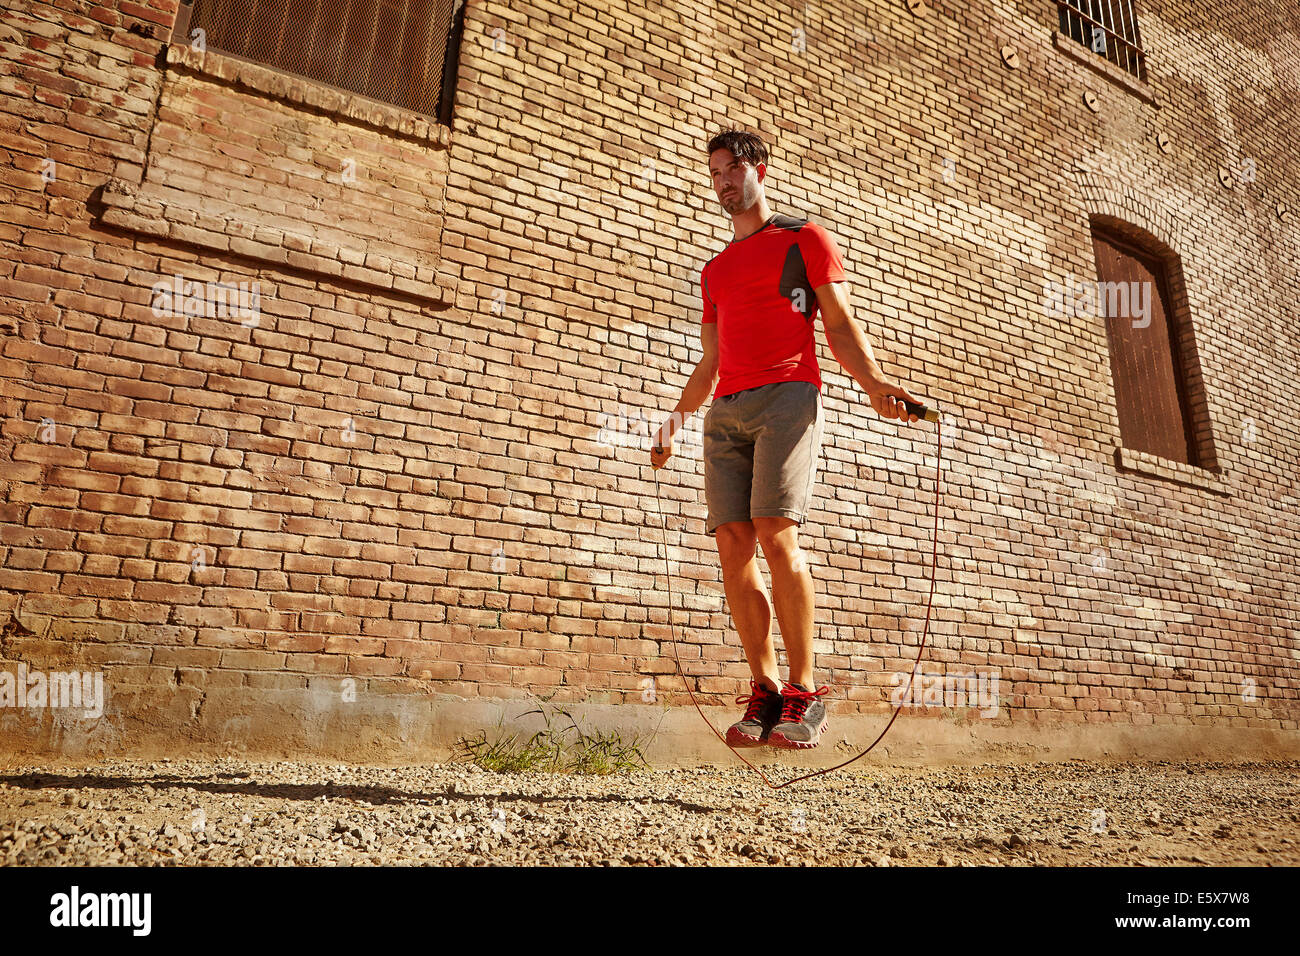 Young man exercising with skipping rope on wasteland - Stock Image